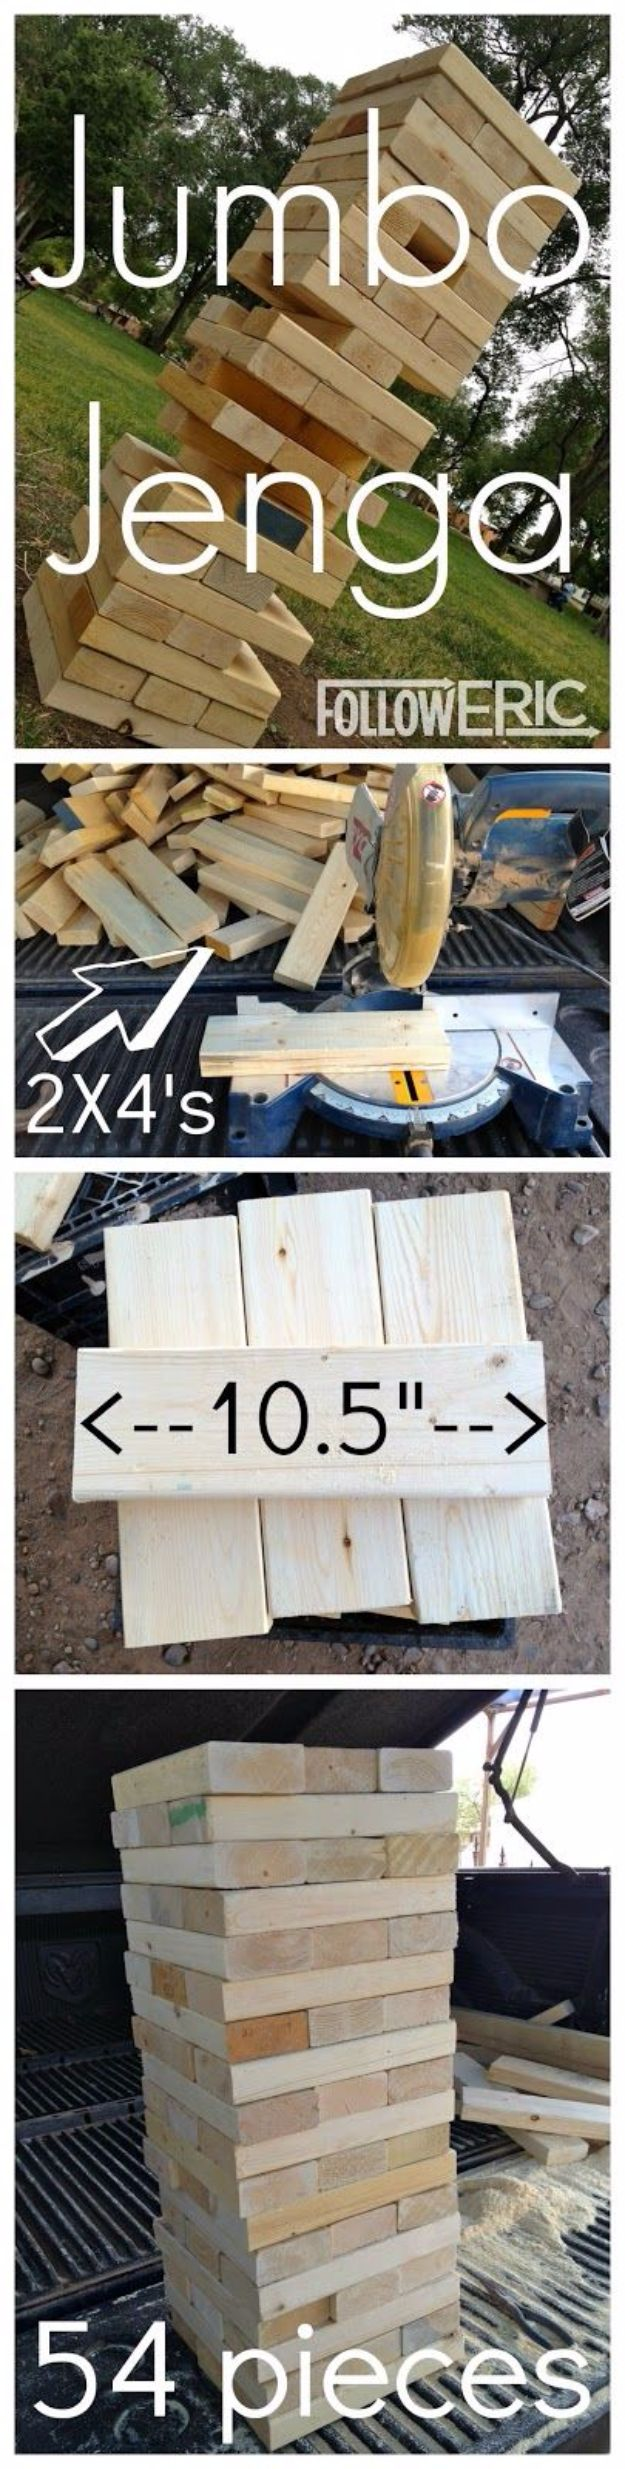 Best DIY Backyard Games - Jumbo Jenga - Cool DIY Yard Game Ideas for Adults, Teens and Kids - Easy Tutorials for Cornhole, Washers, Jenga, Tic Tac Toe and Horseshoes - Cool Projects for Outdoor Parties and Summer Family Fun Outside #diy #backyard #kids #games